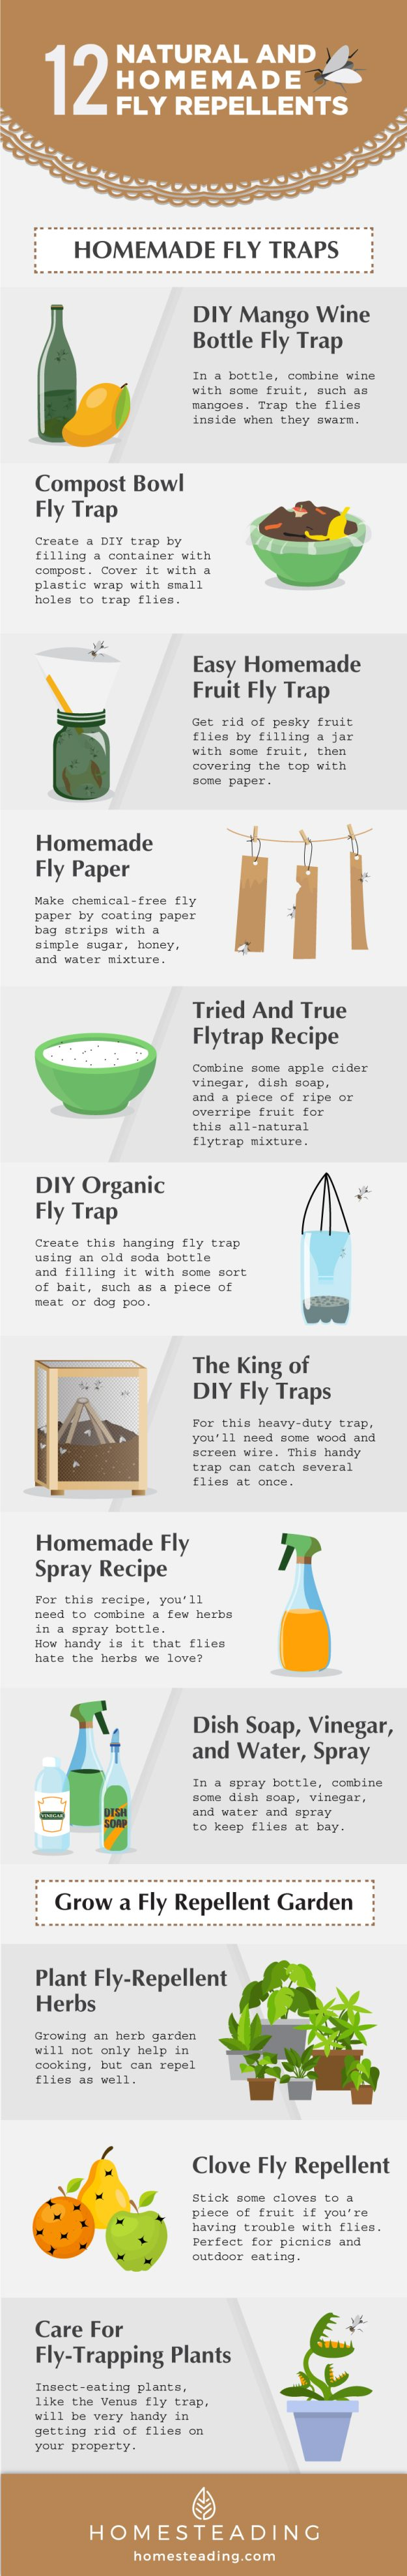 How To Get Rid Of Flies | 12 Natural And Homemade Fly Repellents